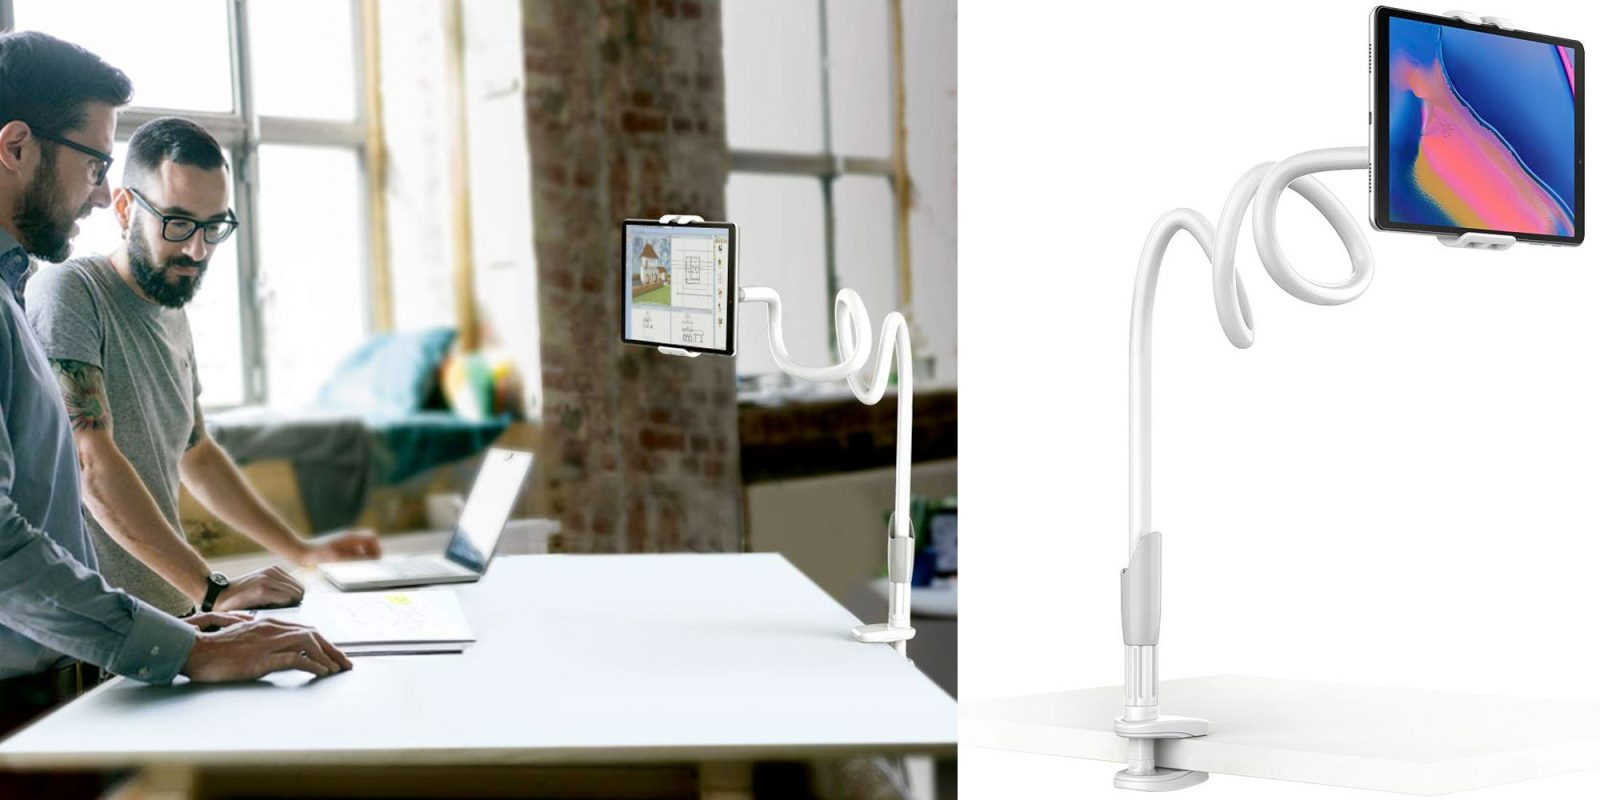 Keep your iPad or Nintendo Switch in view with this $11.50 gooseneck holder